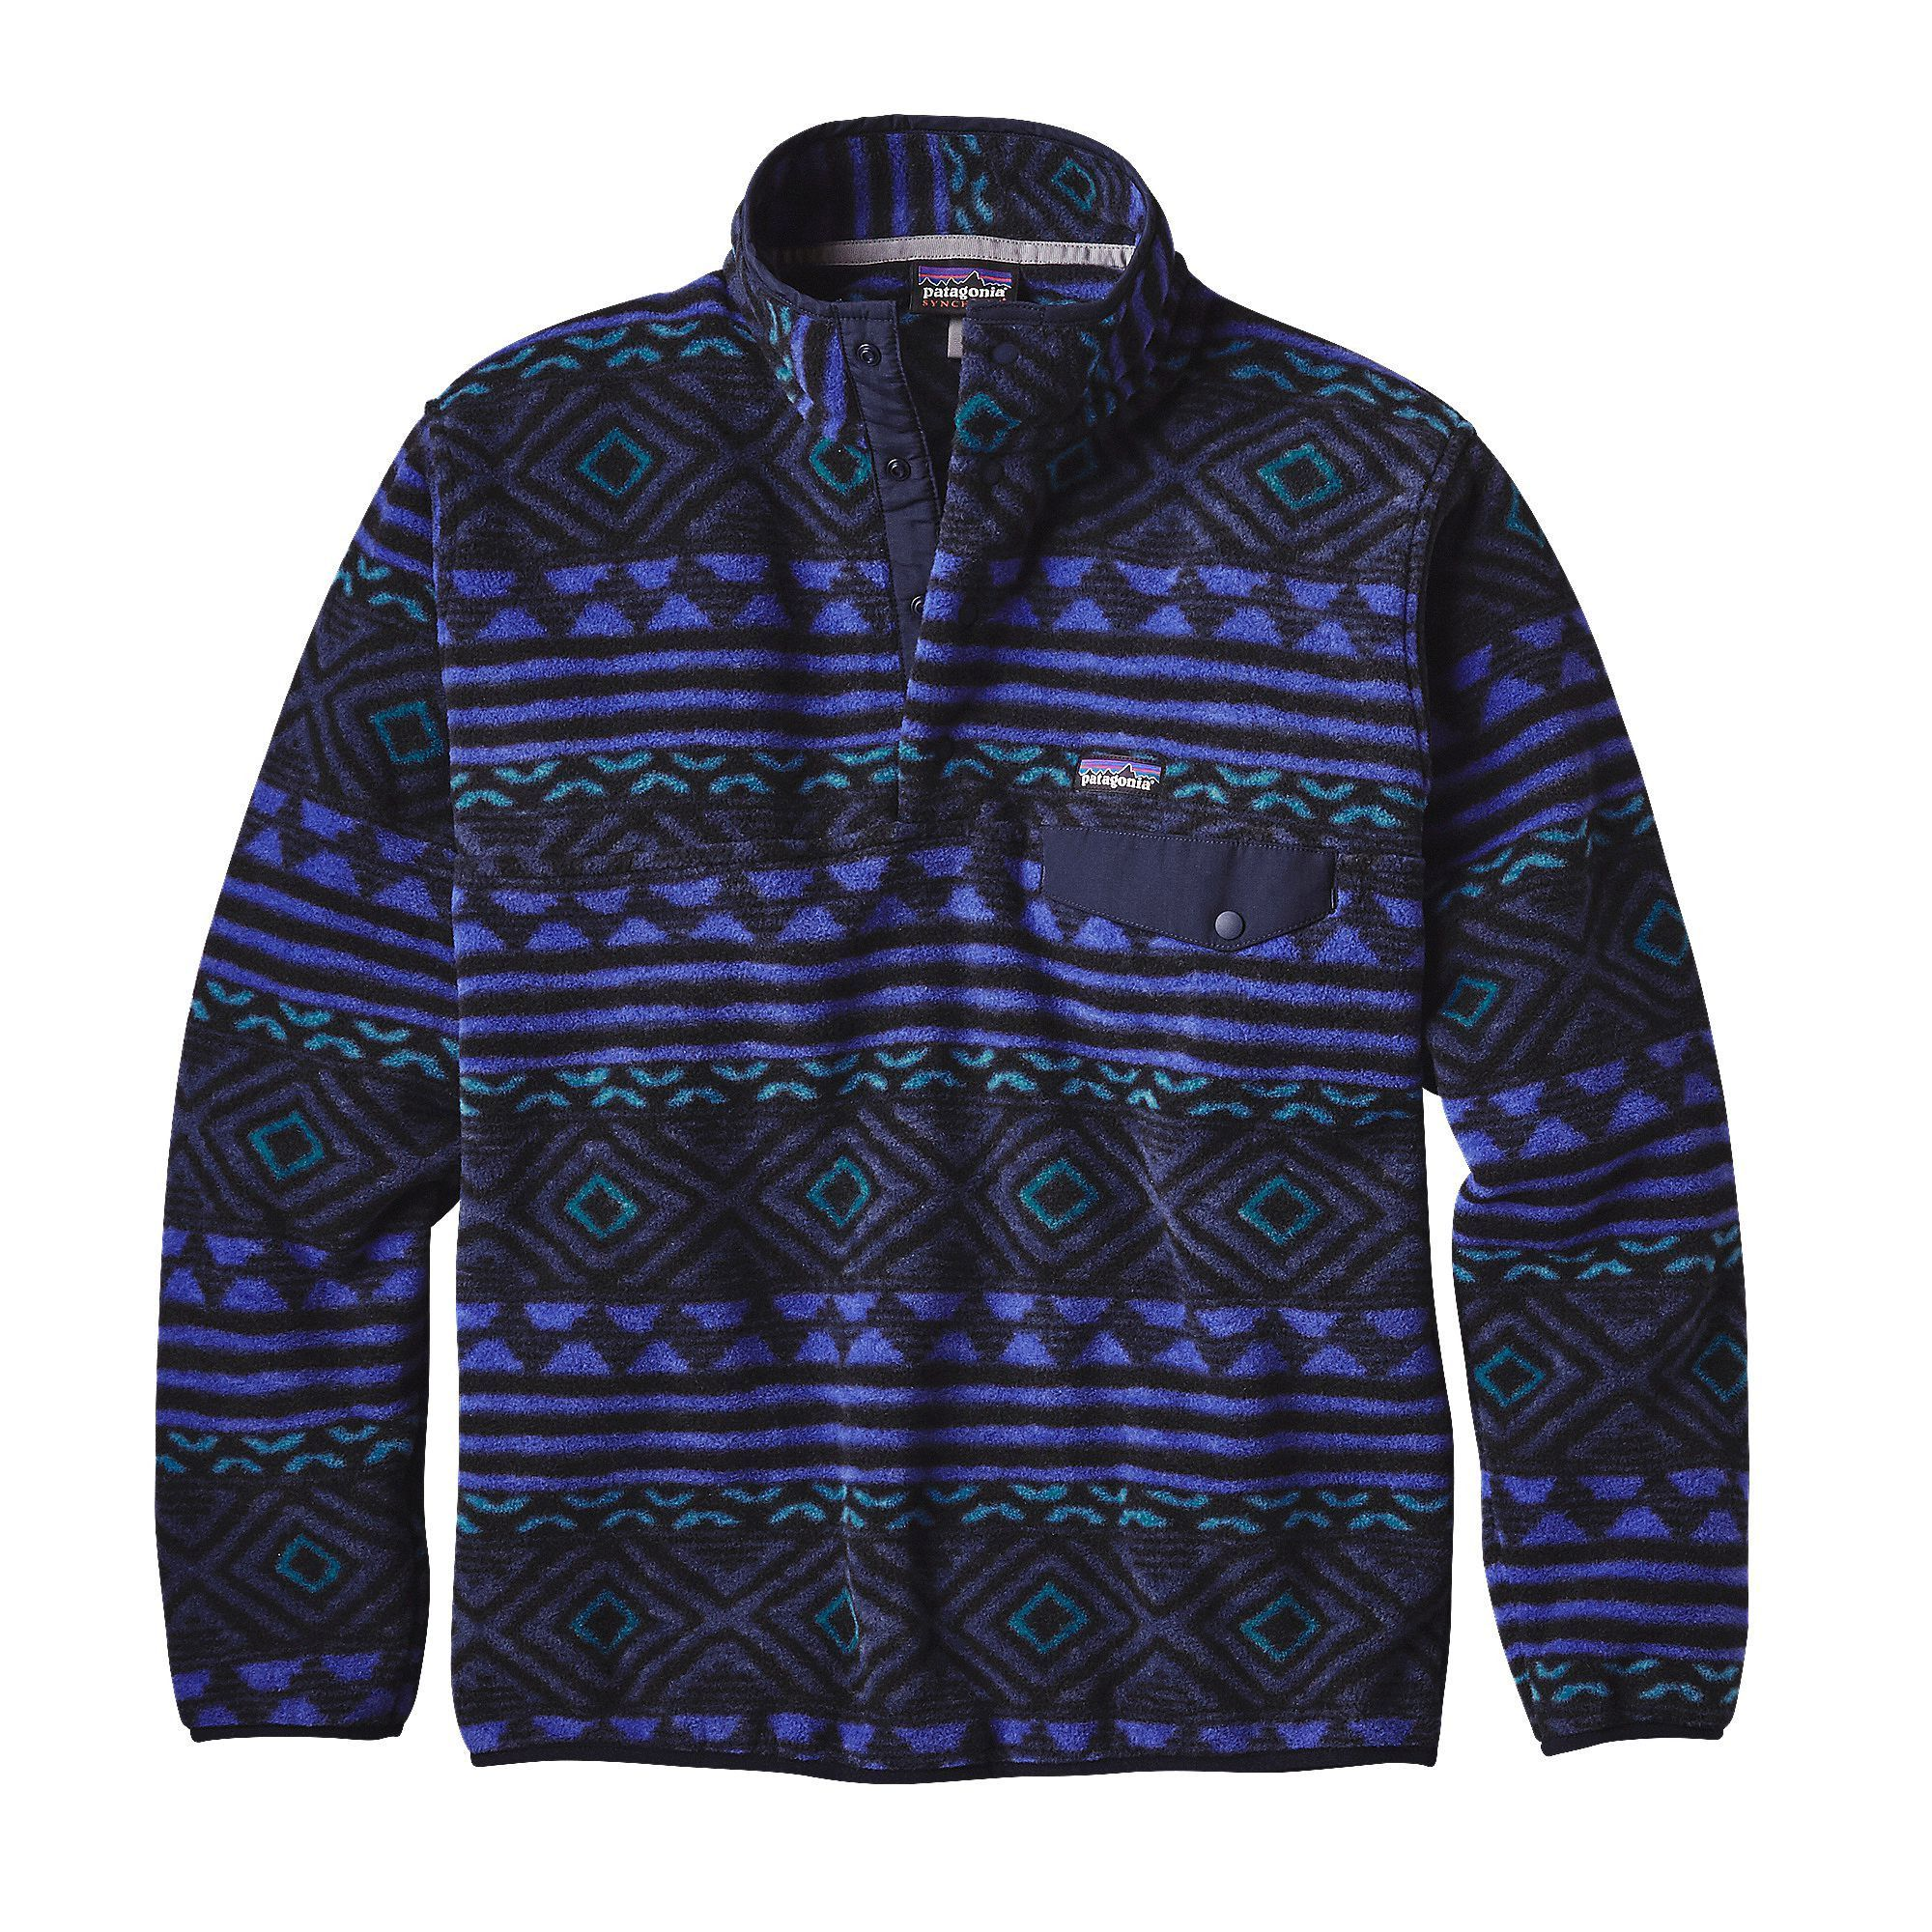 Snap-T® pullovers and well-used multitools: You never realize how much you need them until one goes missing. Made to exceptionally high standards from warm and durable double-faced 100% polyester flee